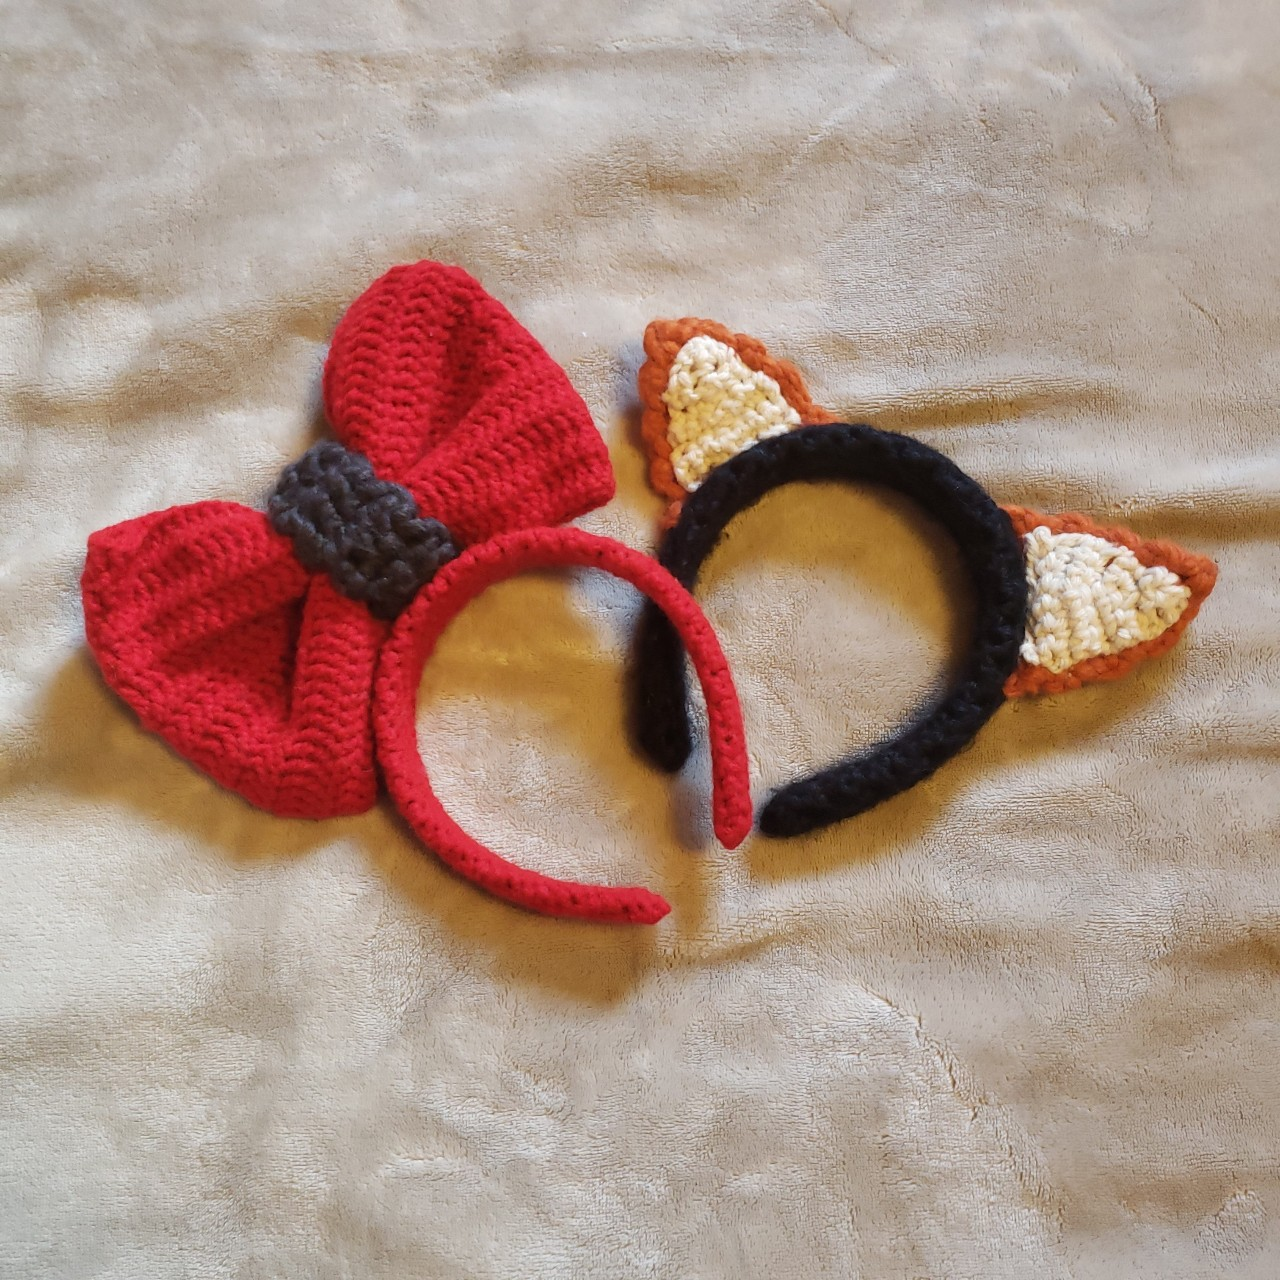 Product Image 1 - CROCHET HEADBANDS  🔆 Giant red bow